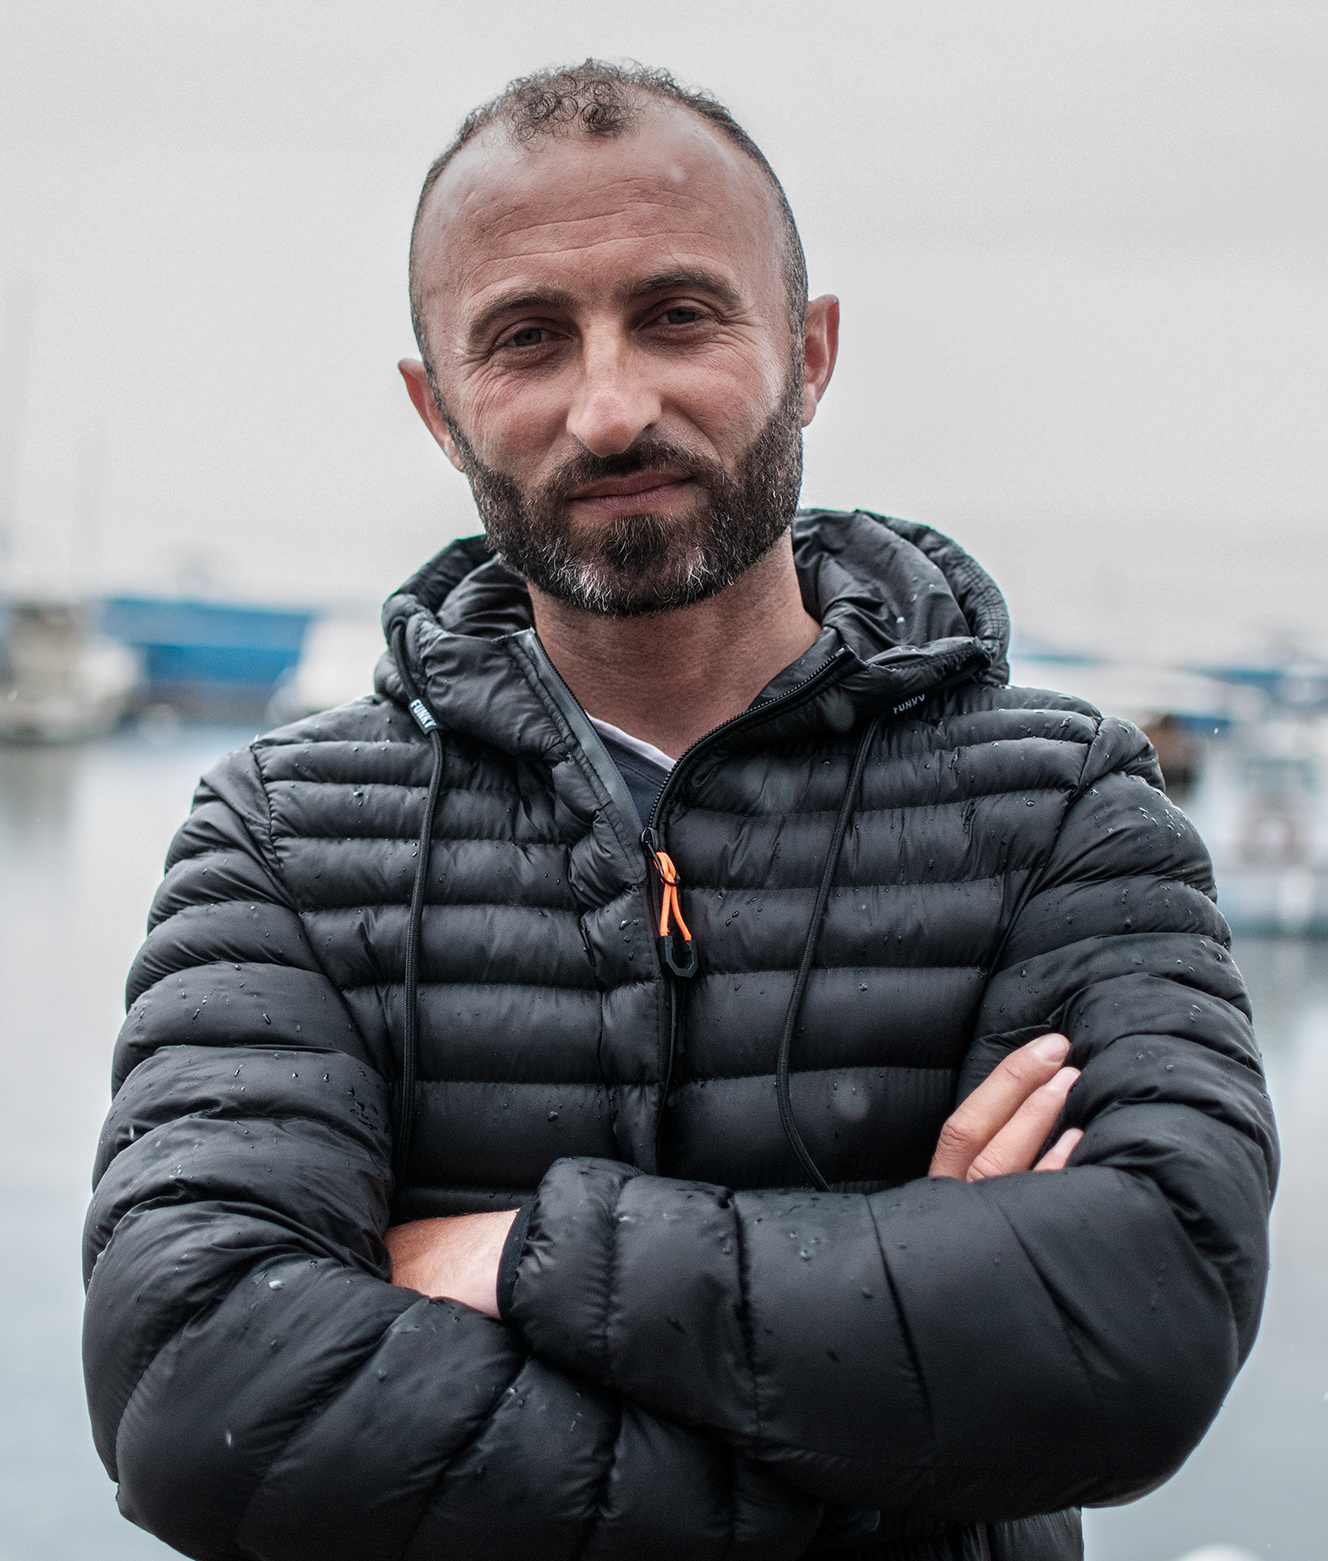 The Fishermen of Athens - Ervin migrated to Greece from Albania and worked as a fisherman when the refugee crisis hit its peak. Today, Ervin is running as a candidate for the upcoming municipal elections. Read more